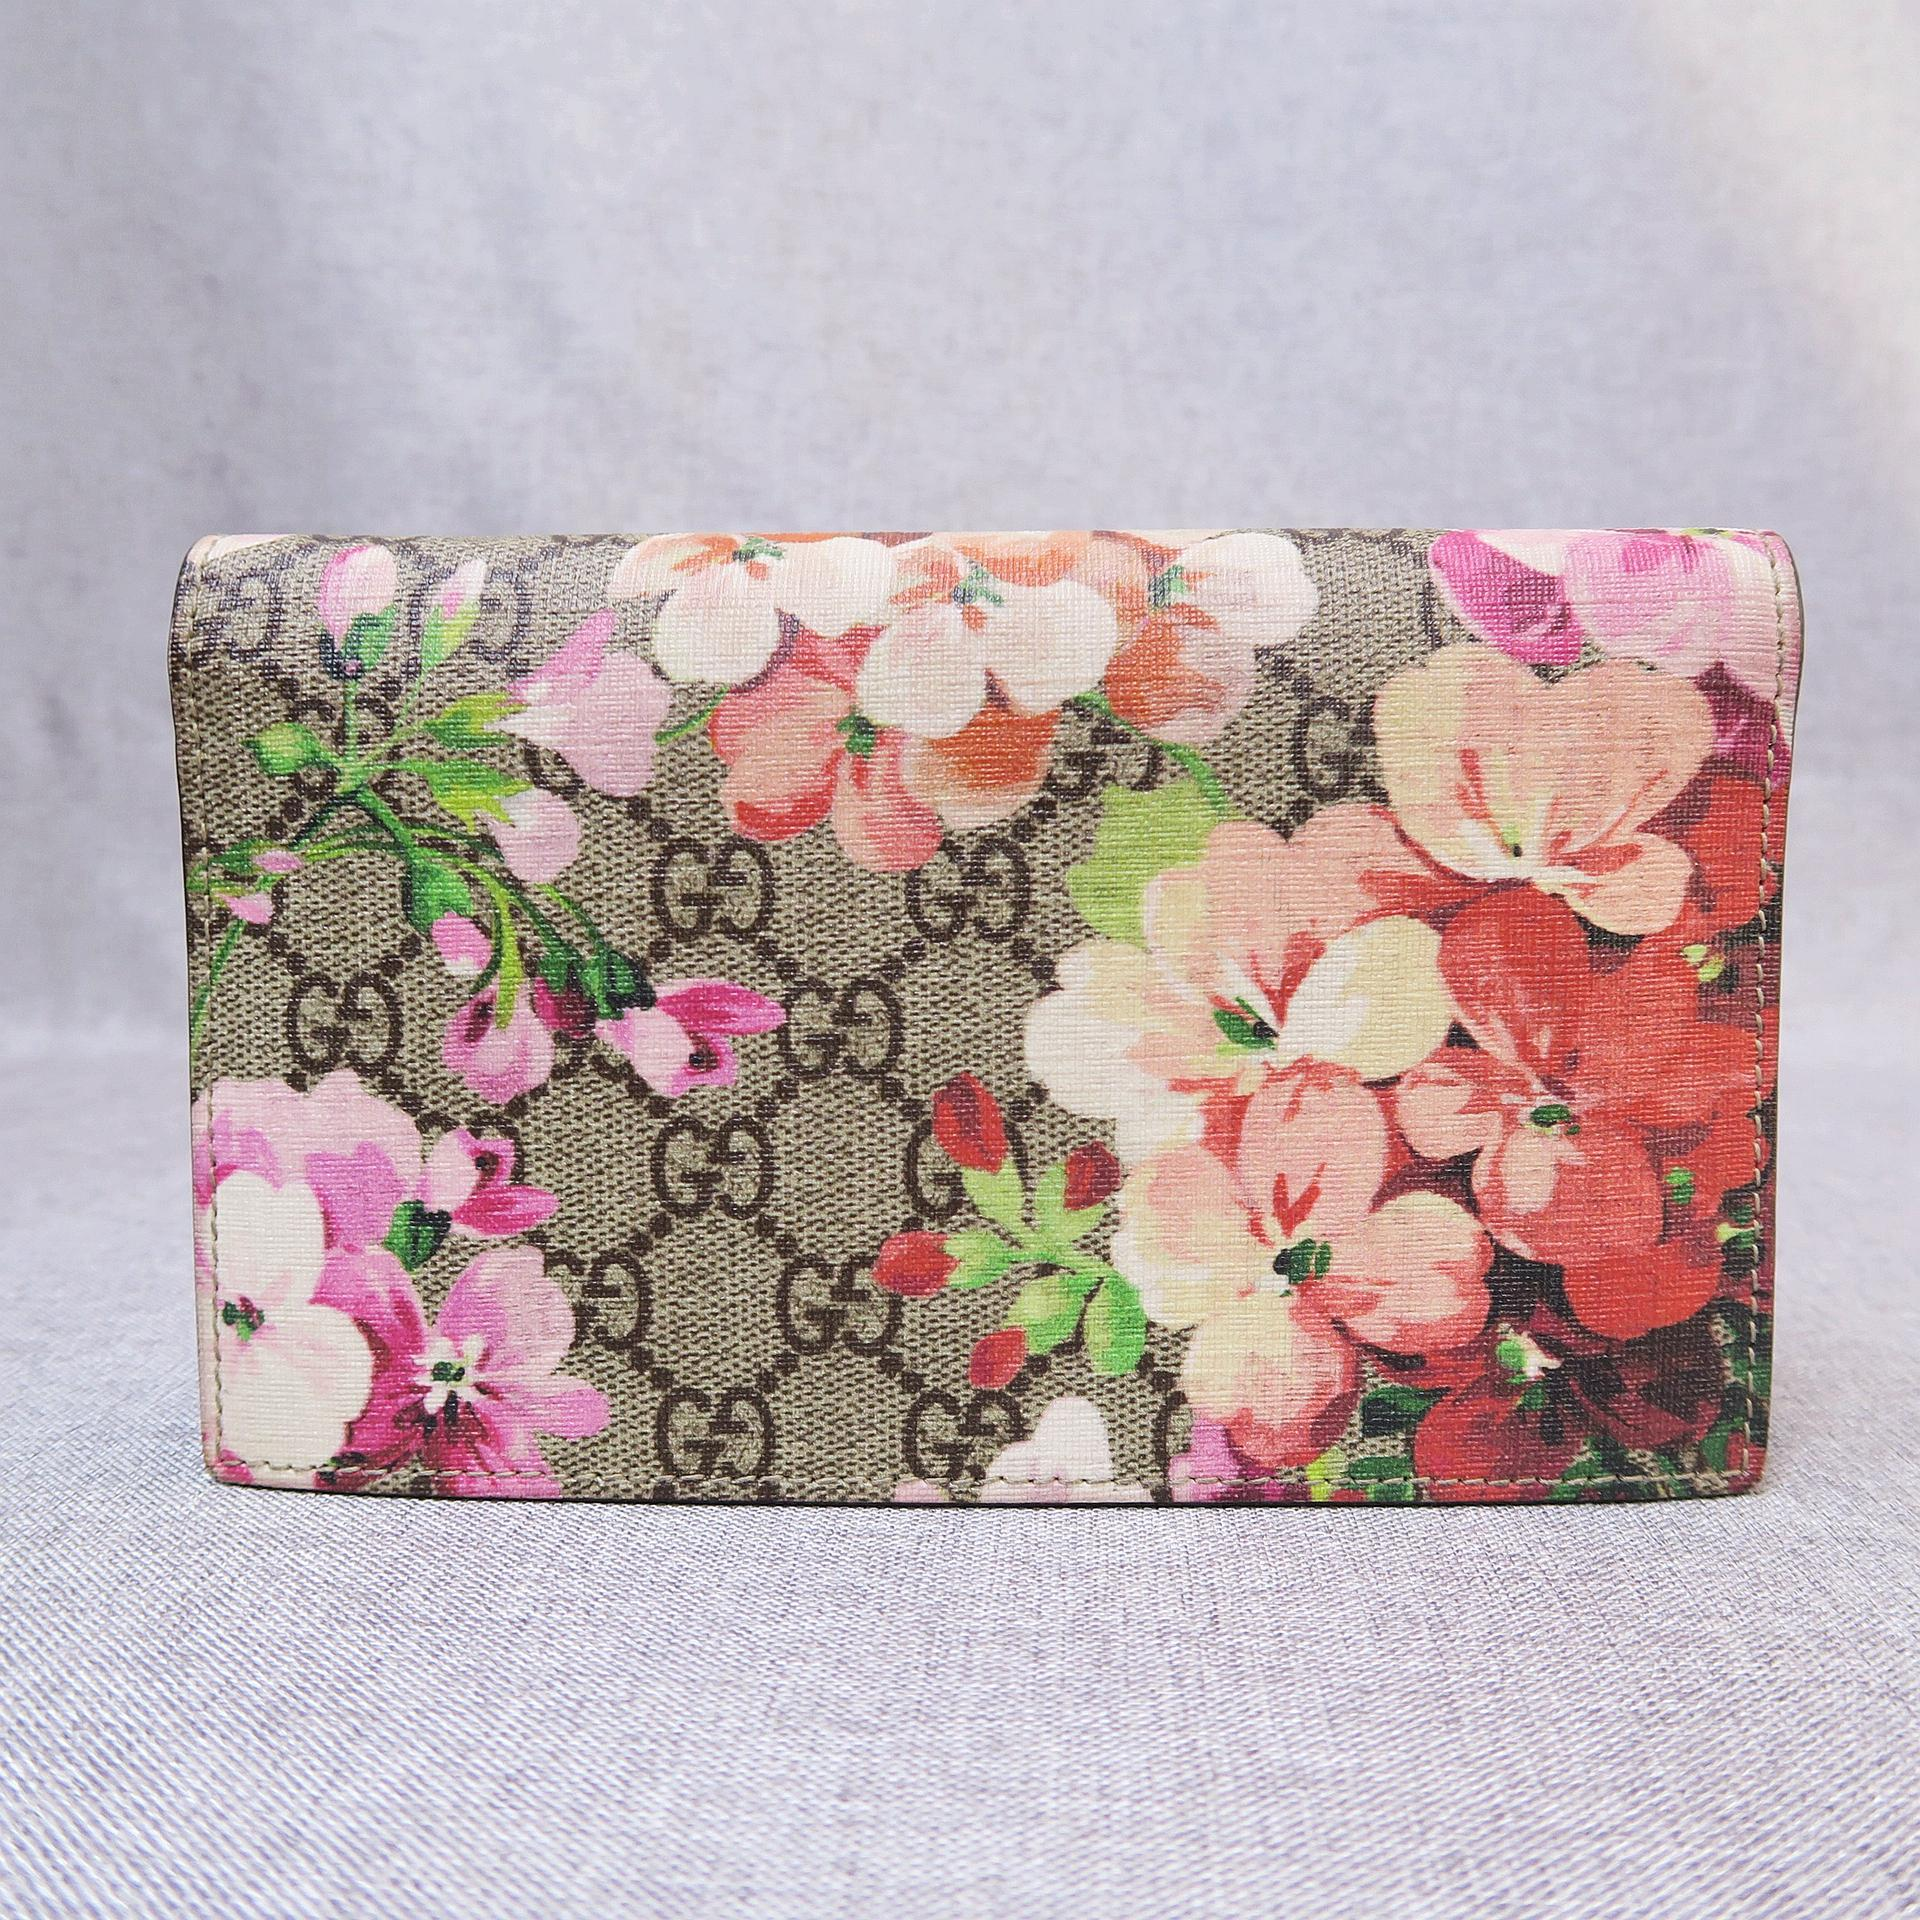 1d15efac92f Gucci Gg Blooms Supreme Chain Wallet Gray Canvas Cross Body Bag